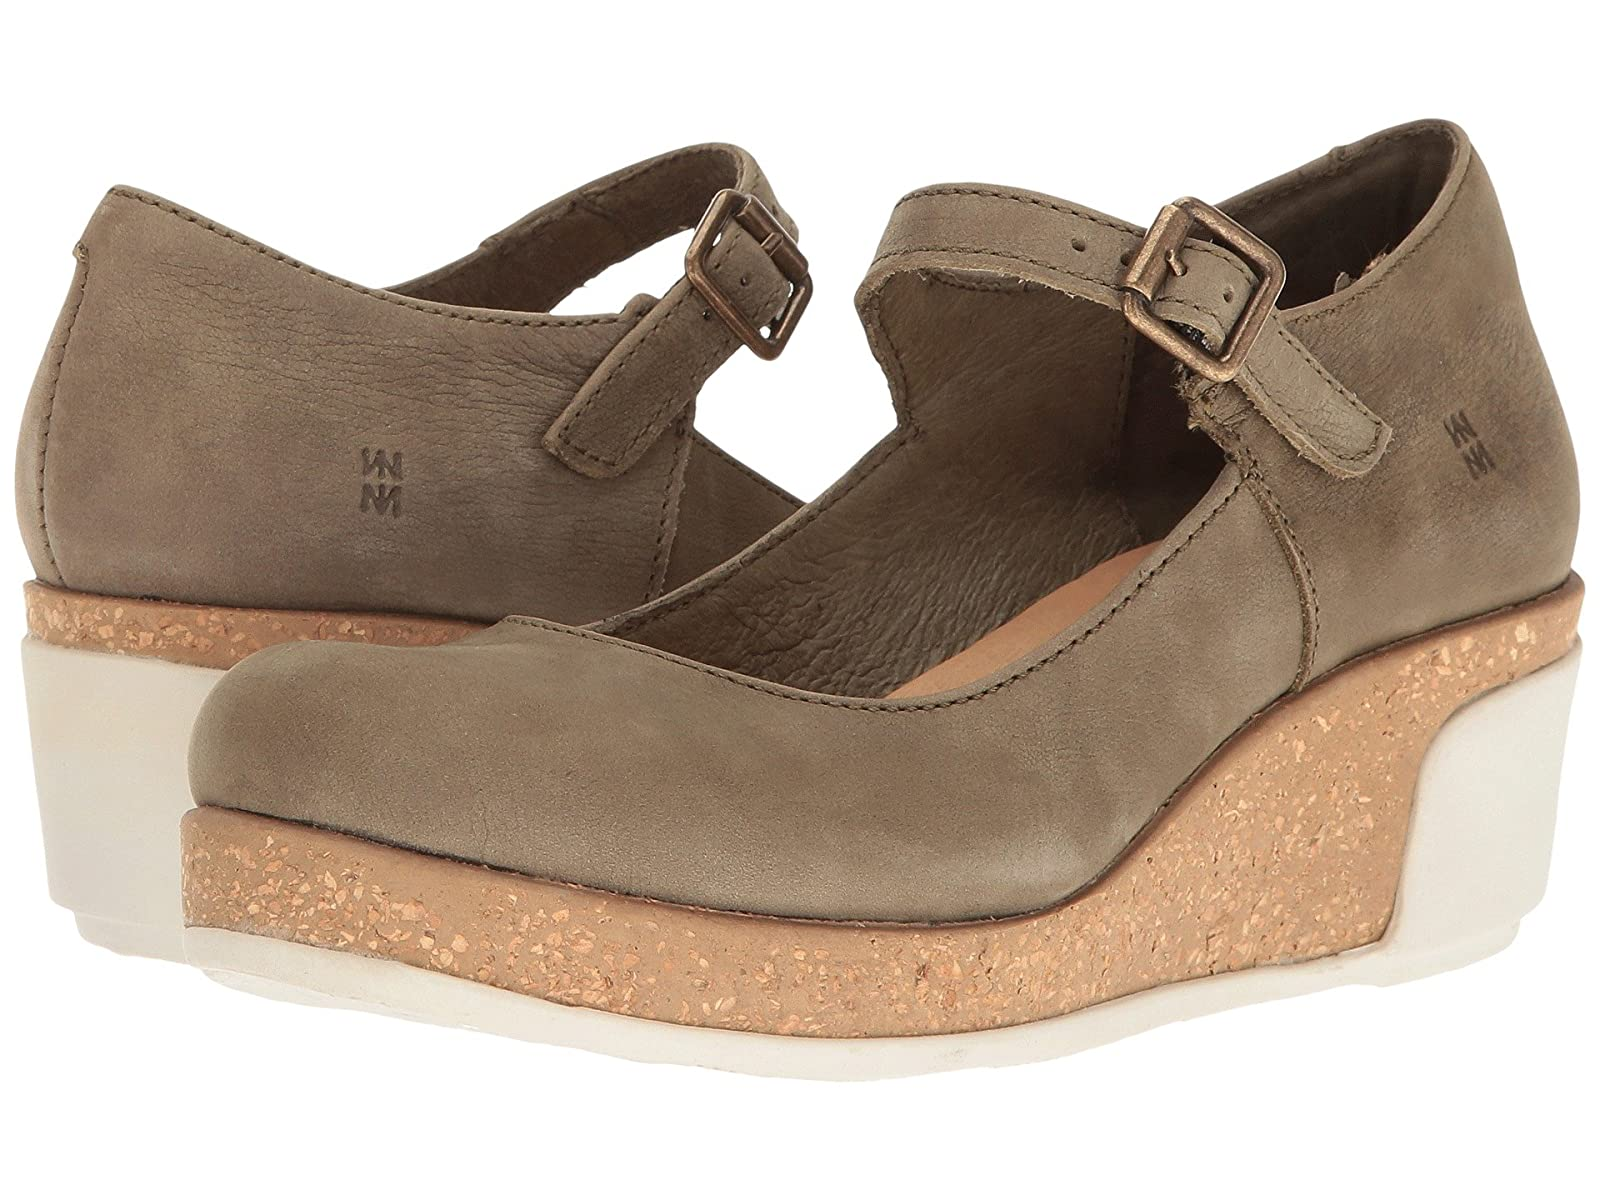 El Naturalista Leaves N5004Cheap and distinctive eye-catching shoes